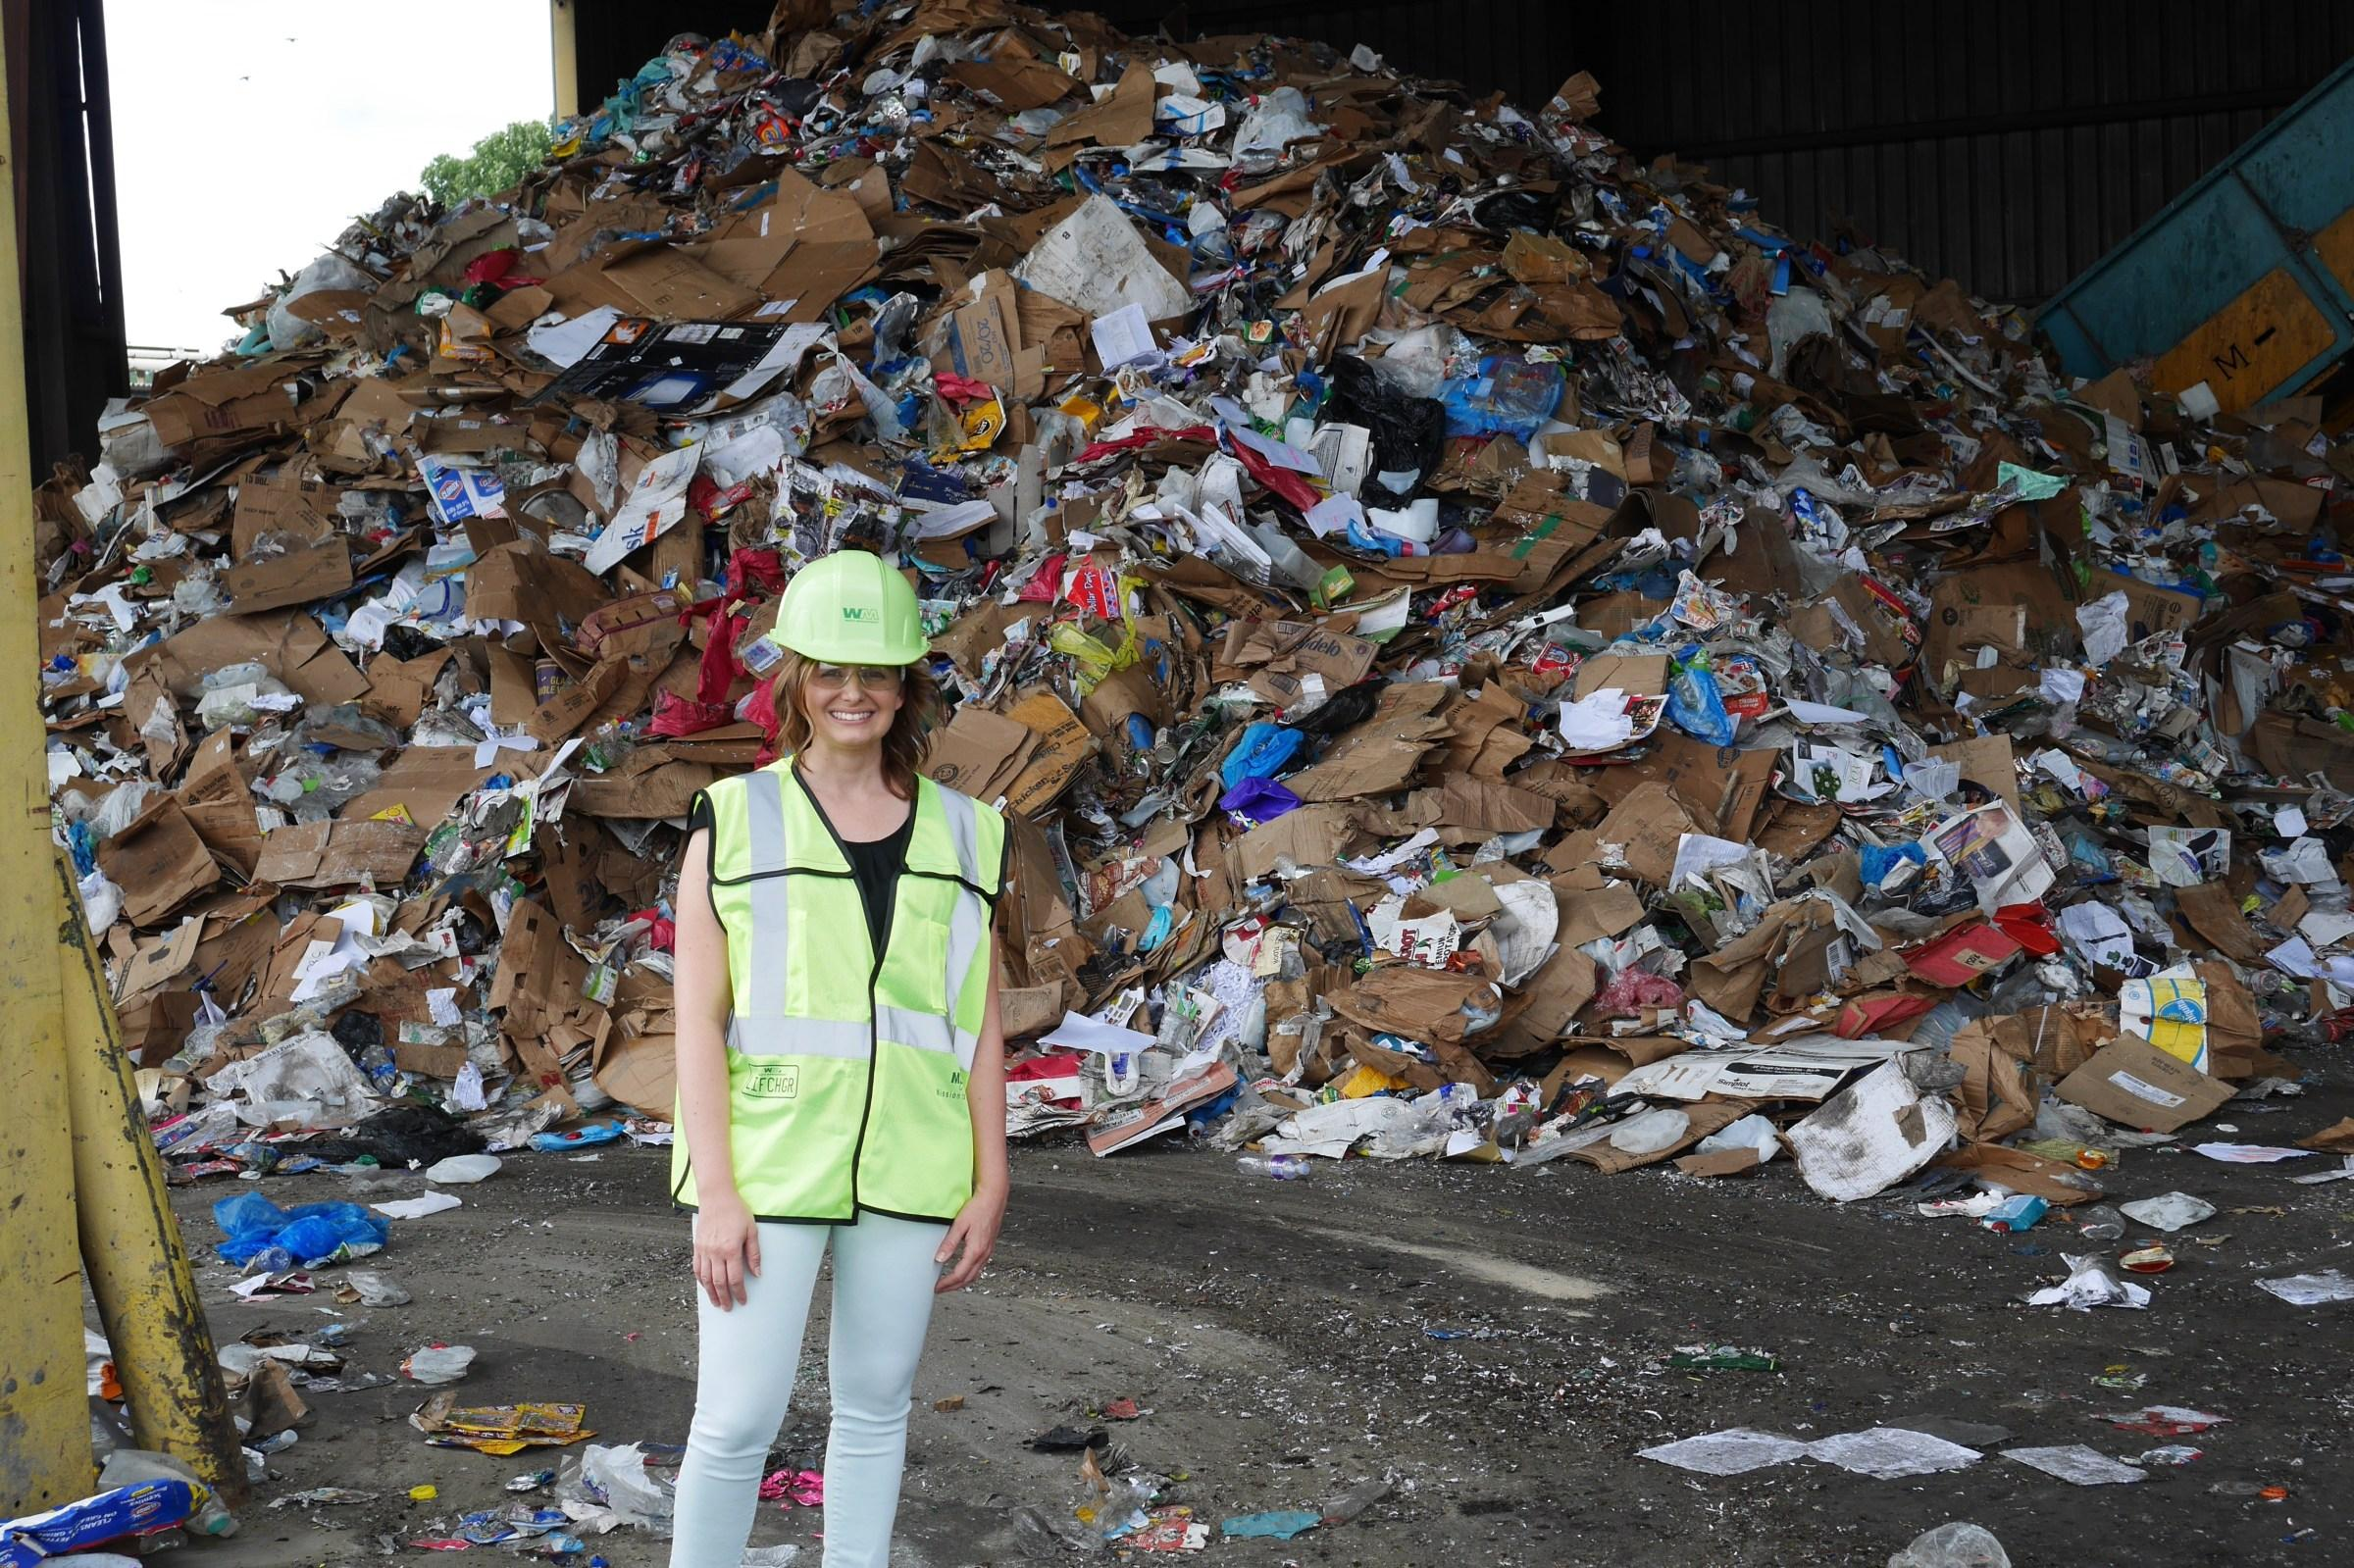 China doesn't want most of our plastics or junk mail anymore